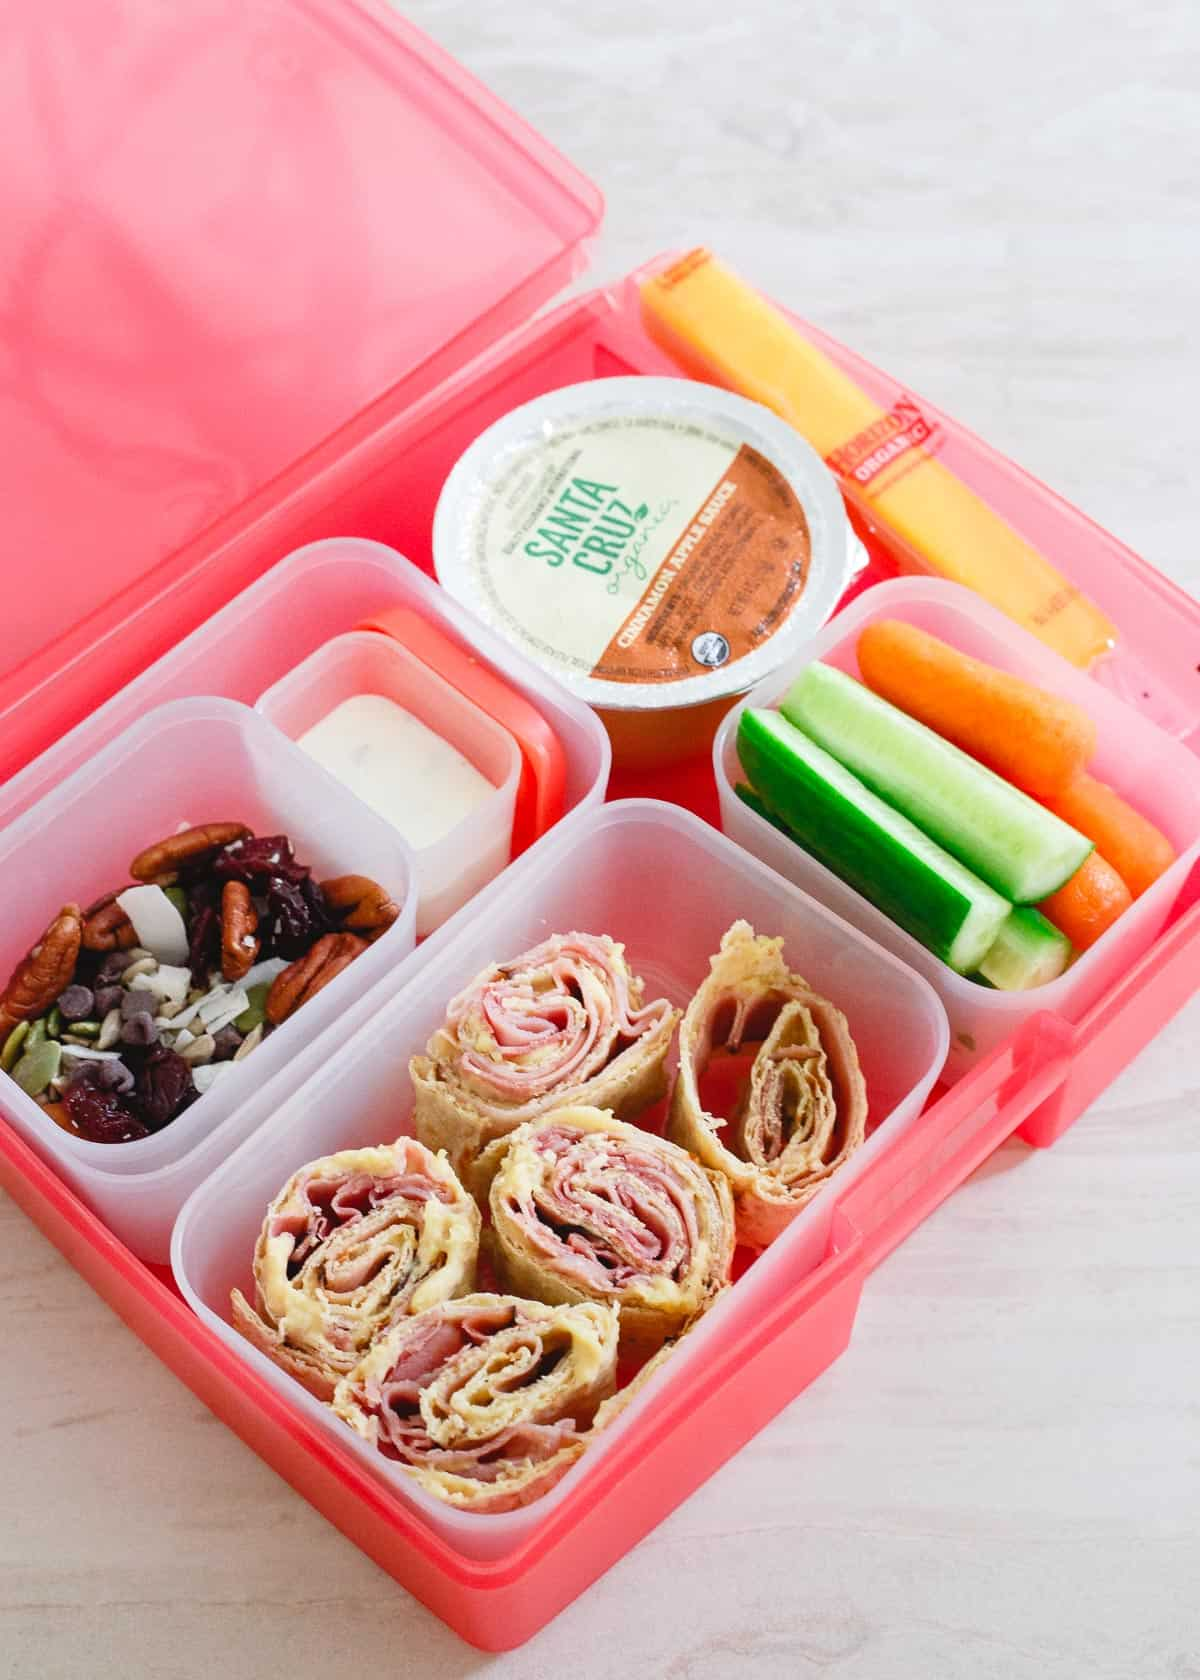 Simple lunchbox ideas including a recipe for an easy trail mix your kids will love is just in time for back to school!